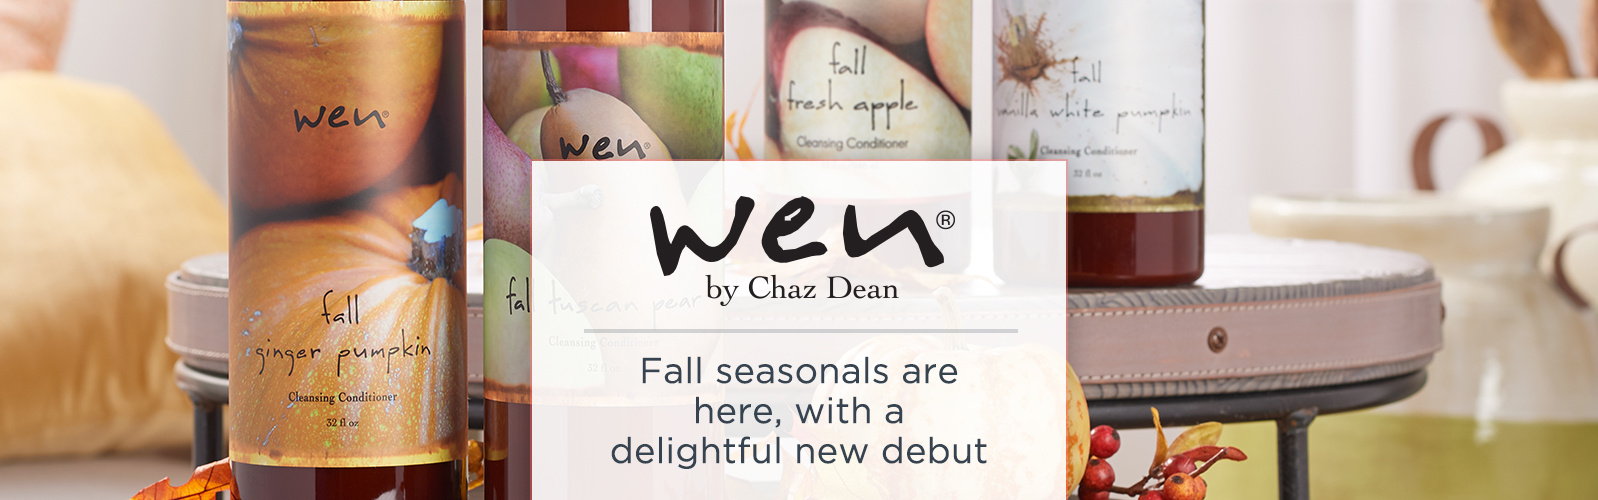 WEN by Chaz Dean - Fall seasonals are here, with a delightful new debut